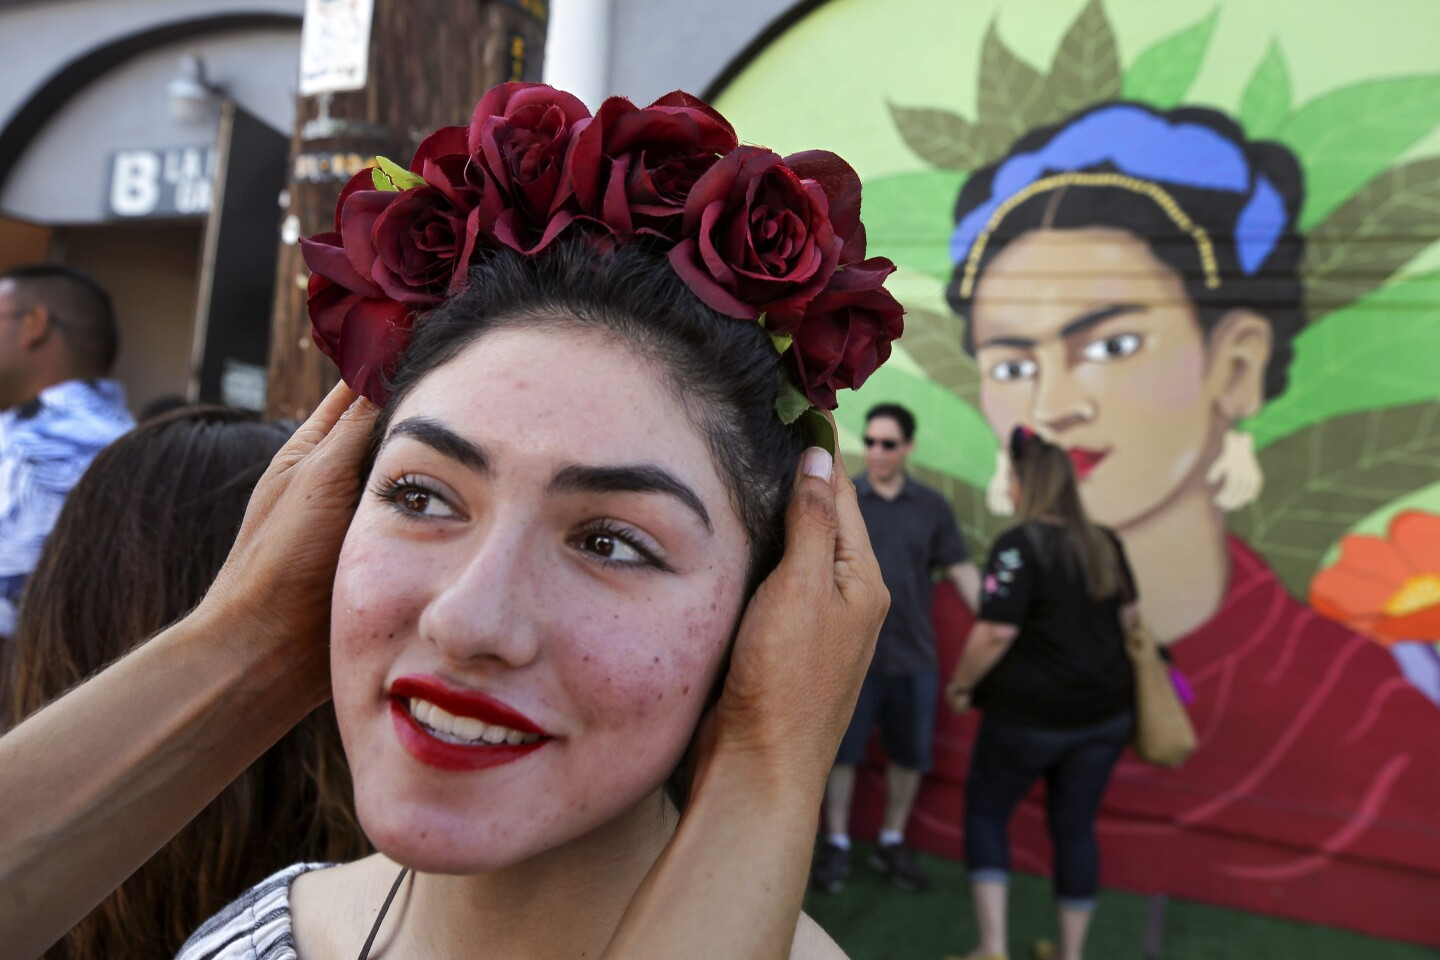 Frida Ramos, 16, stands in front of a large mural of Frida Kahlo, painted by artist and owner of the La Bodega Gallery Soni Lopez, as her mother Beatriz Ramos adjusts her Frida Kahlo style of flower crown while outside of the La Bodega Gallery during the 5th annual Friducha, a festival celebrating Mexican artist Frida Kahlo in Barrio Logan on Saturday, July 6, 2019 in San Diego, California.